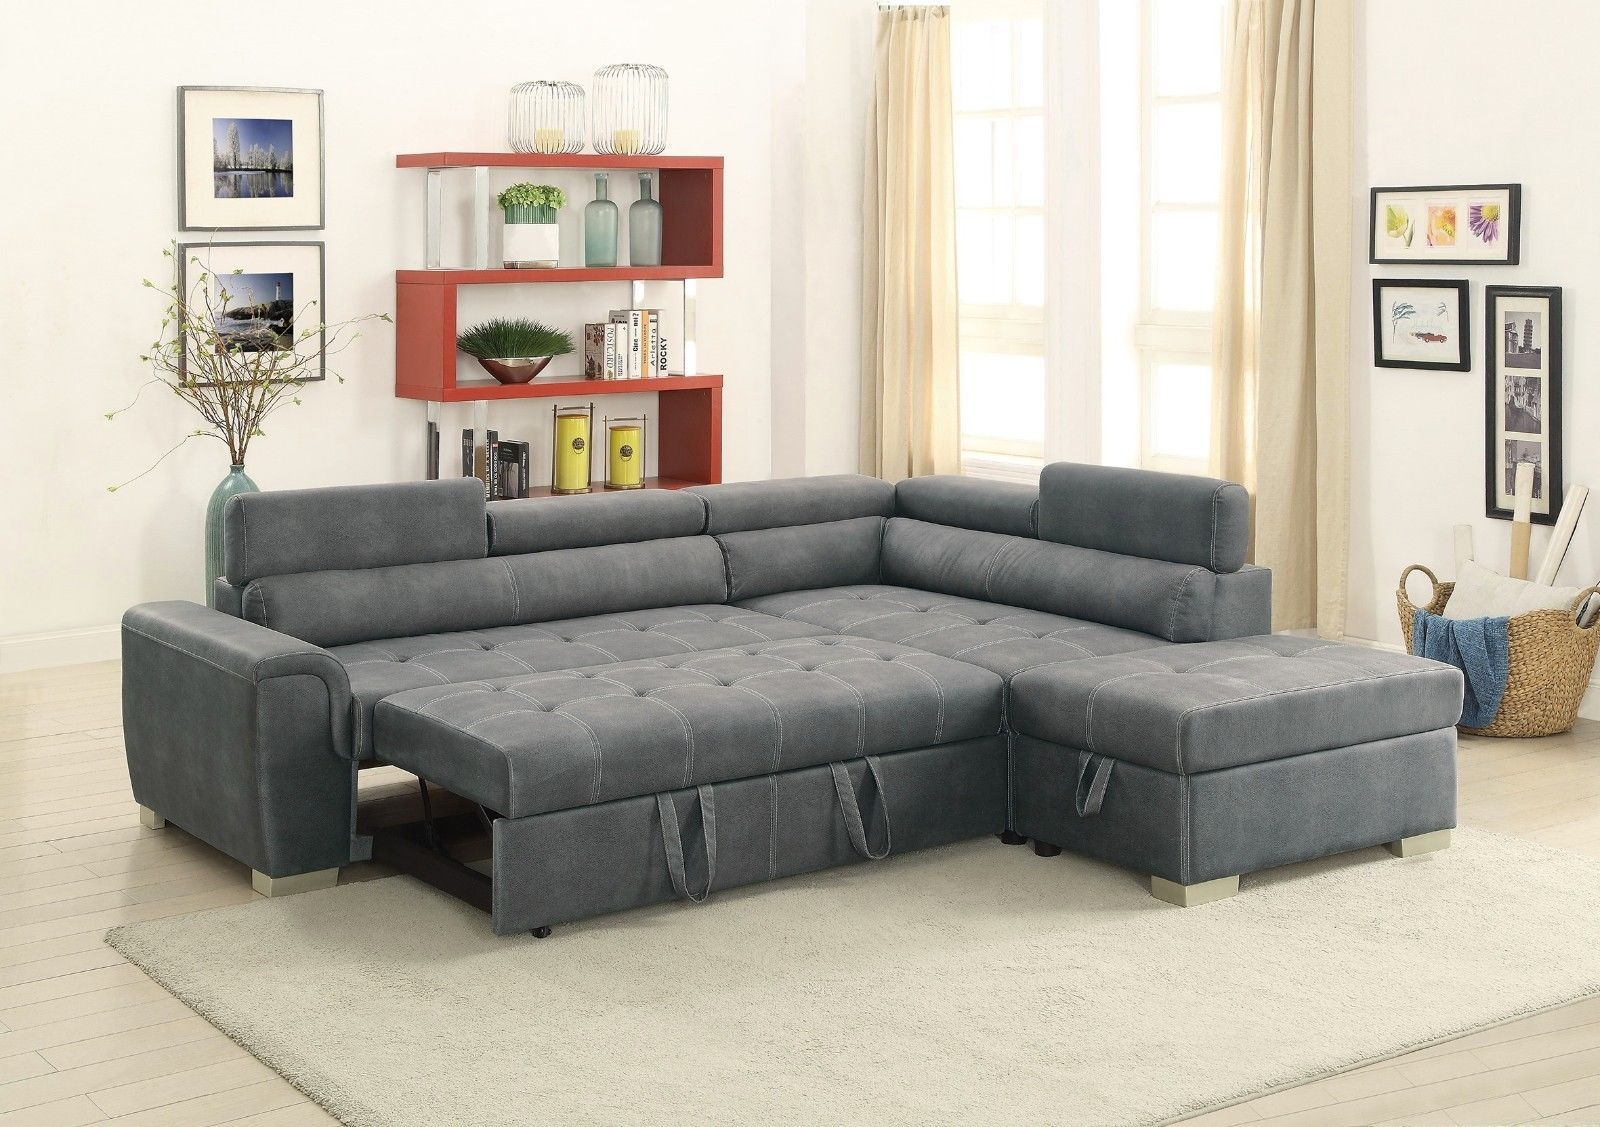 Sectional Grey Breathable Leatherette Chaise Pull Out Sofa Bed Storage Ottoman Fabric Sectional Sofas Sectional Sofa Sectional Sofa Couch